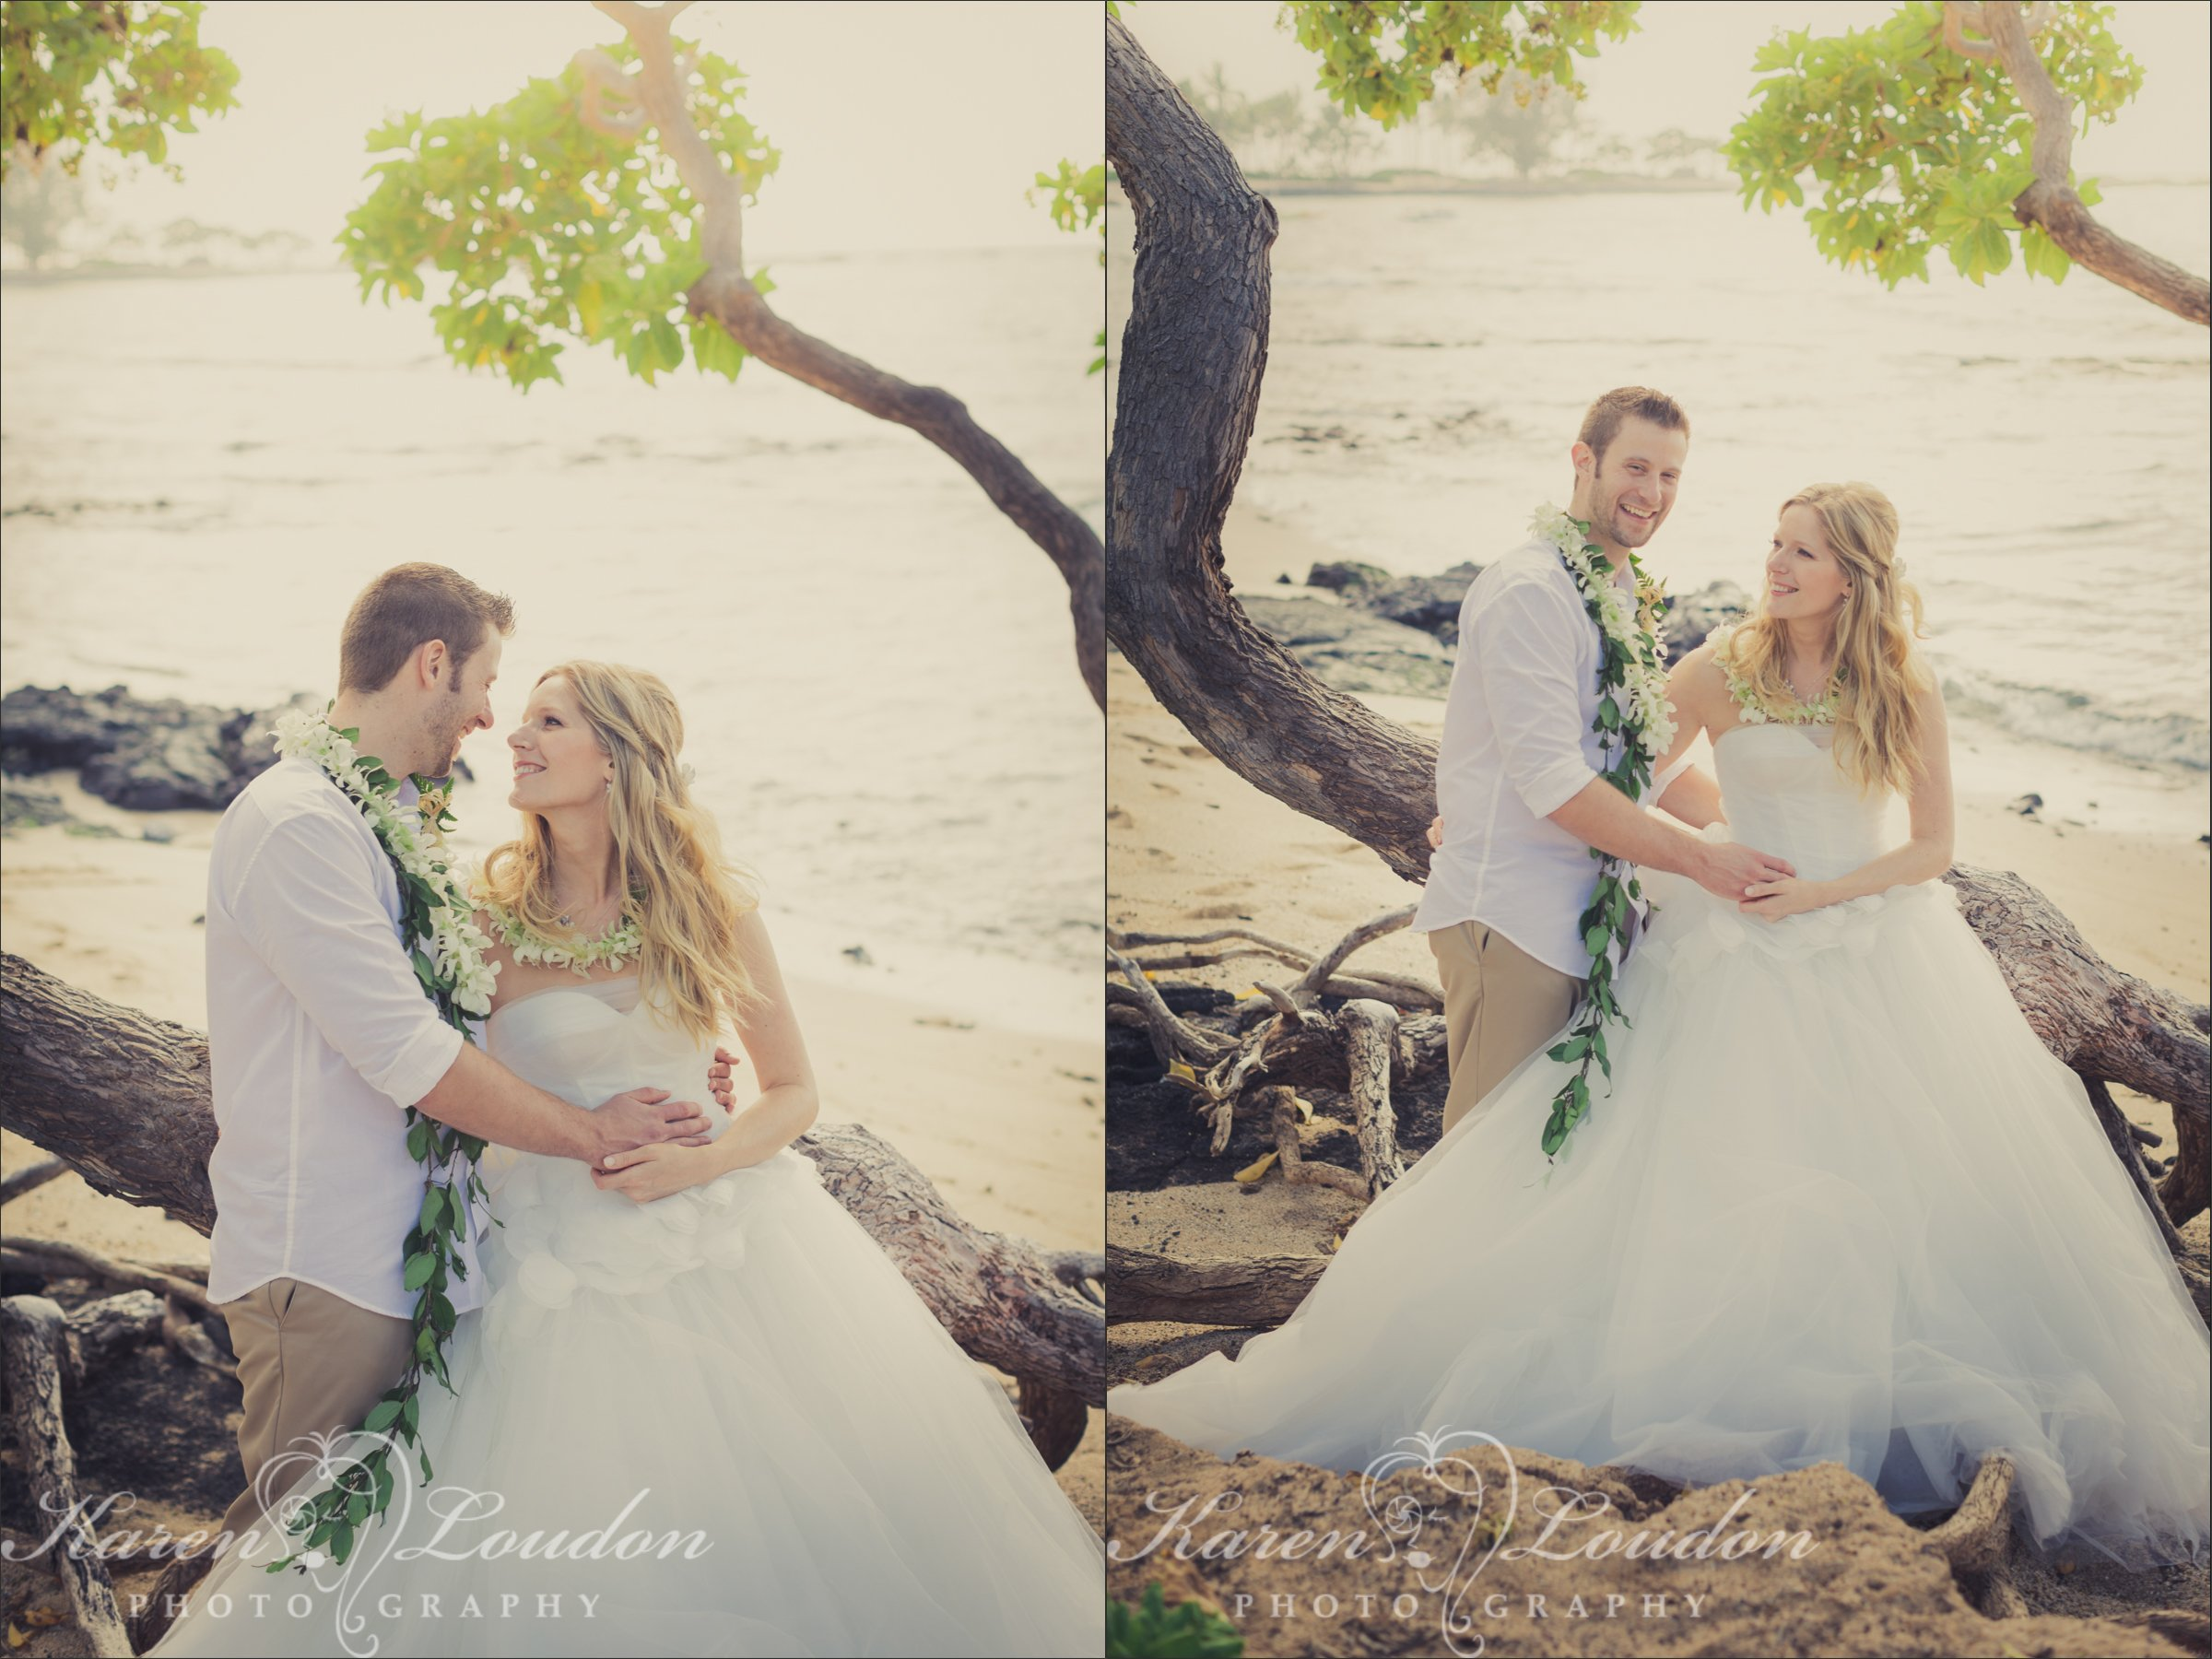 Kikaua Pt. Wedding Photography